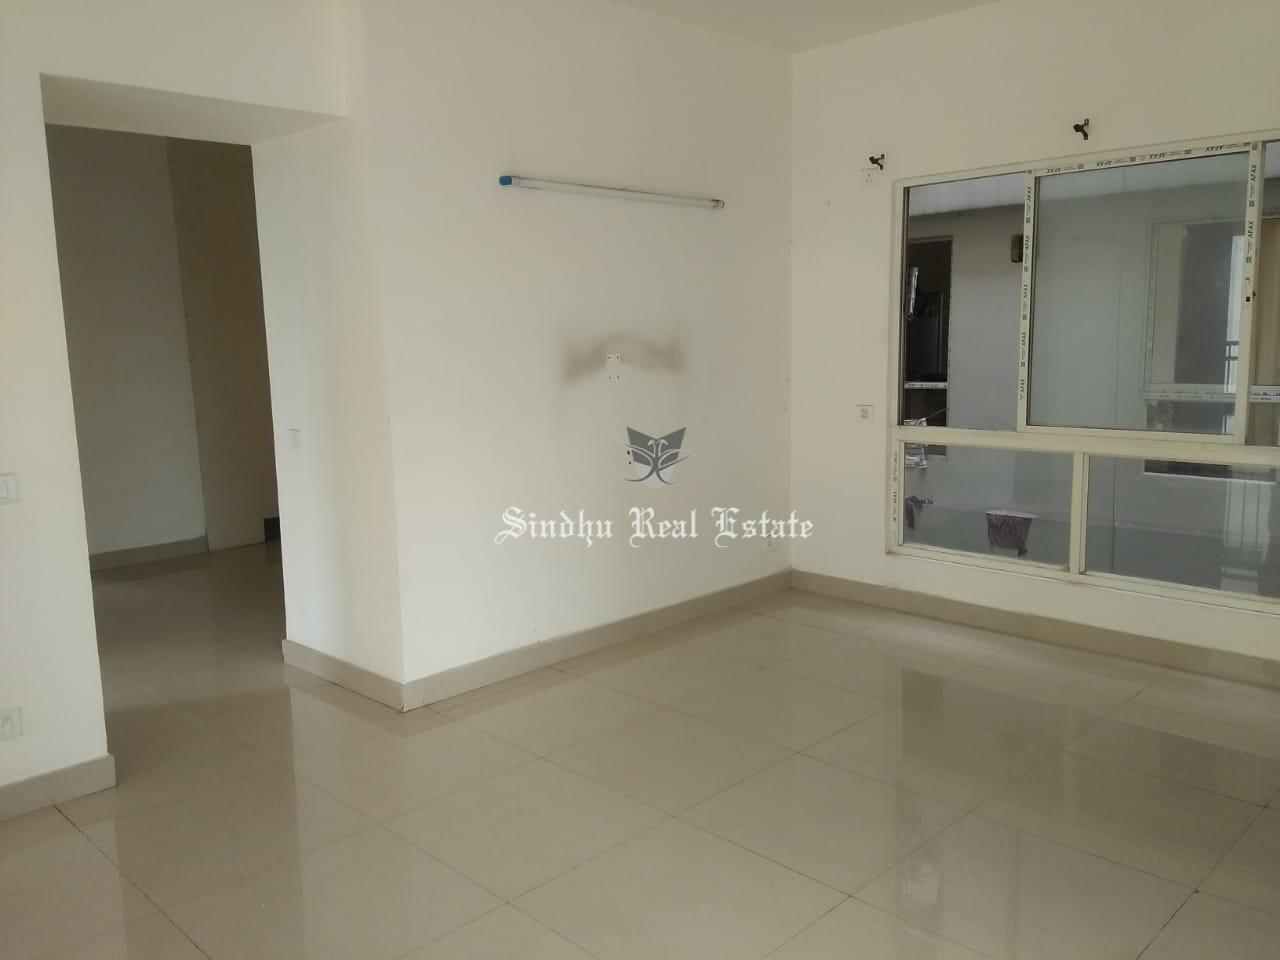 UNFURNISHED RESIDENTIAL FLAT FOR RENT IN SALT LAKE